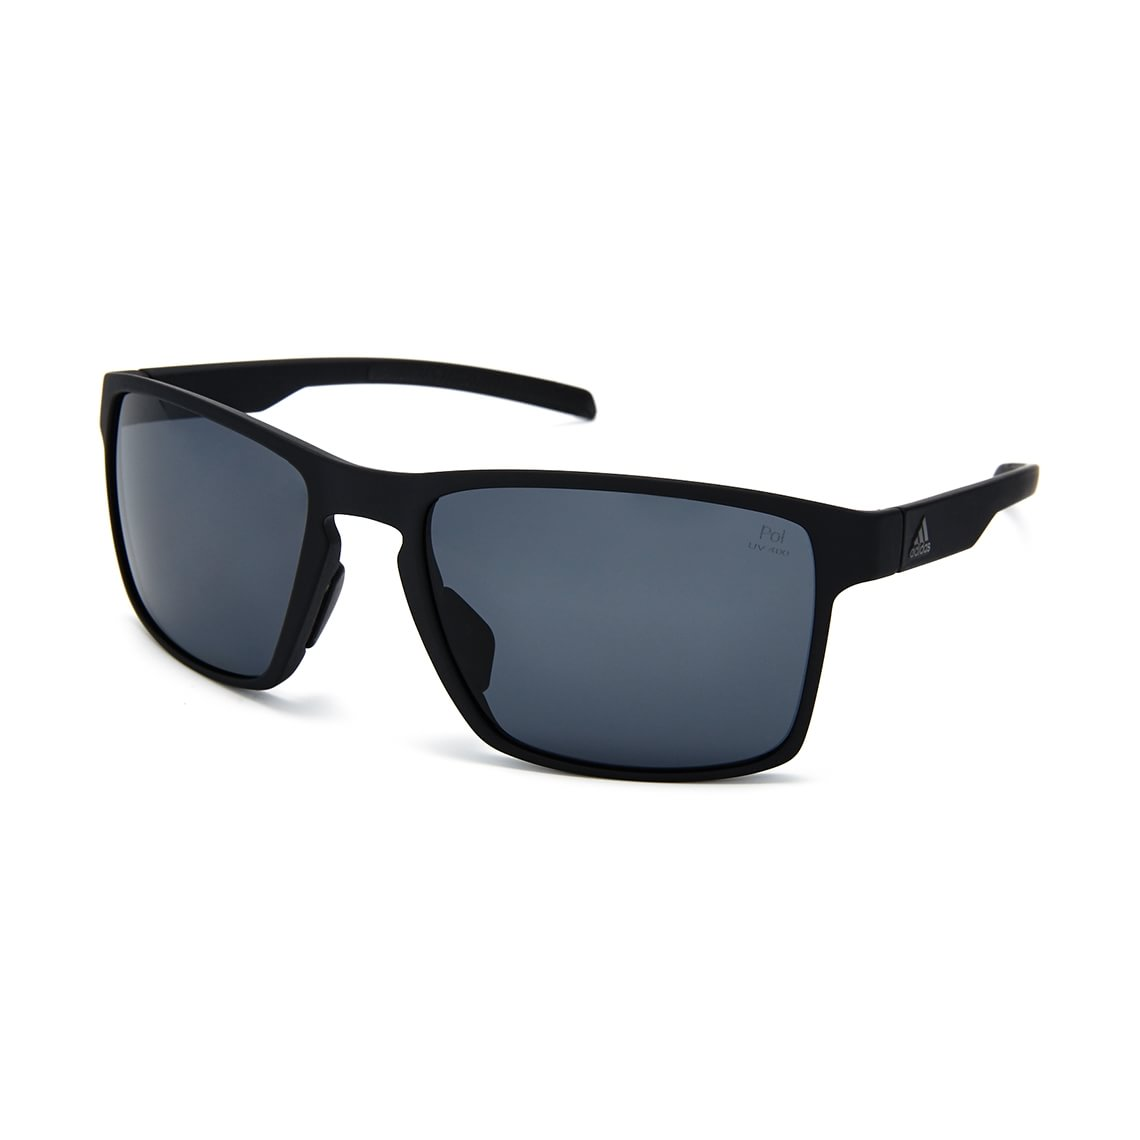 Adidas Wayfinder Grey Polarized AD30 75 9200